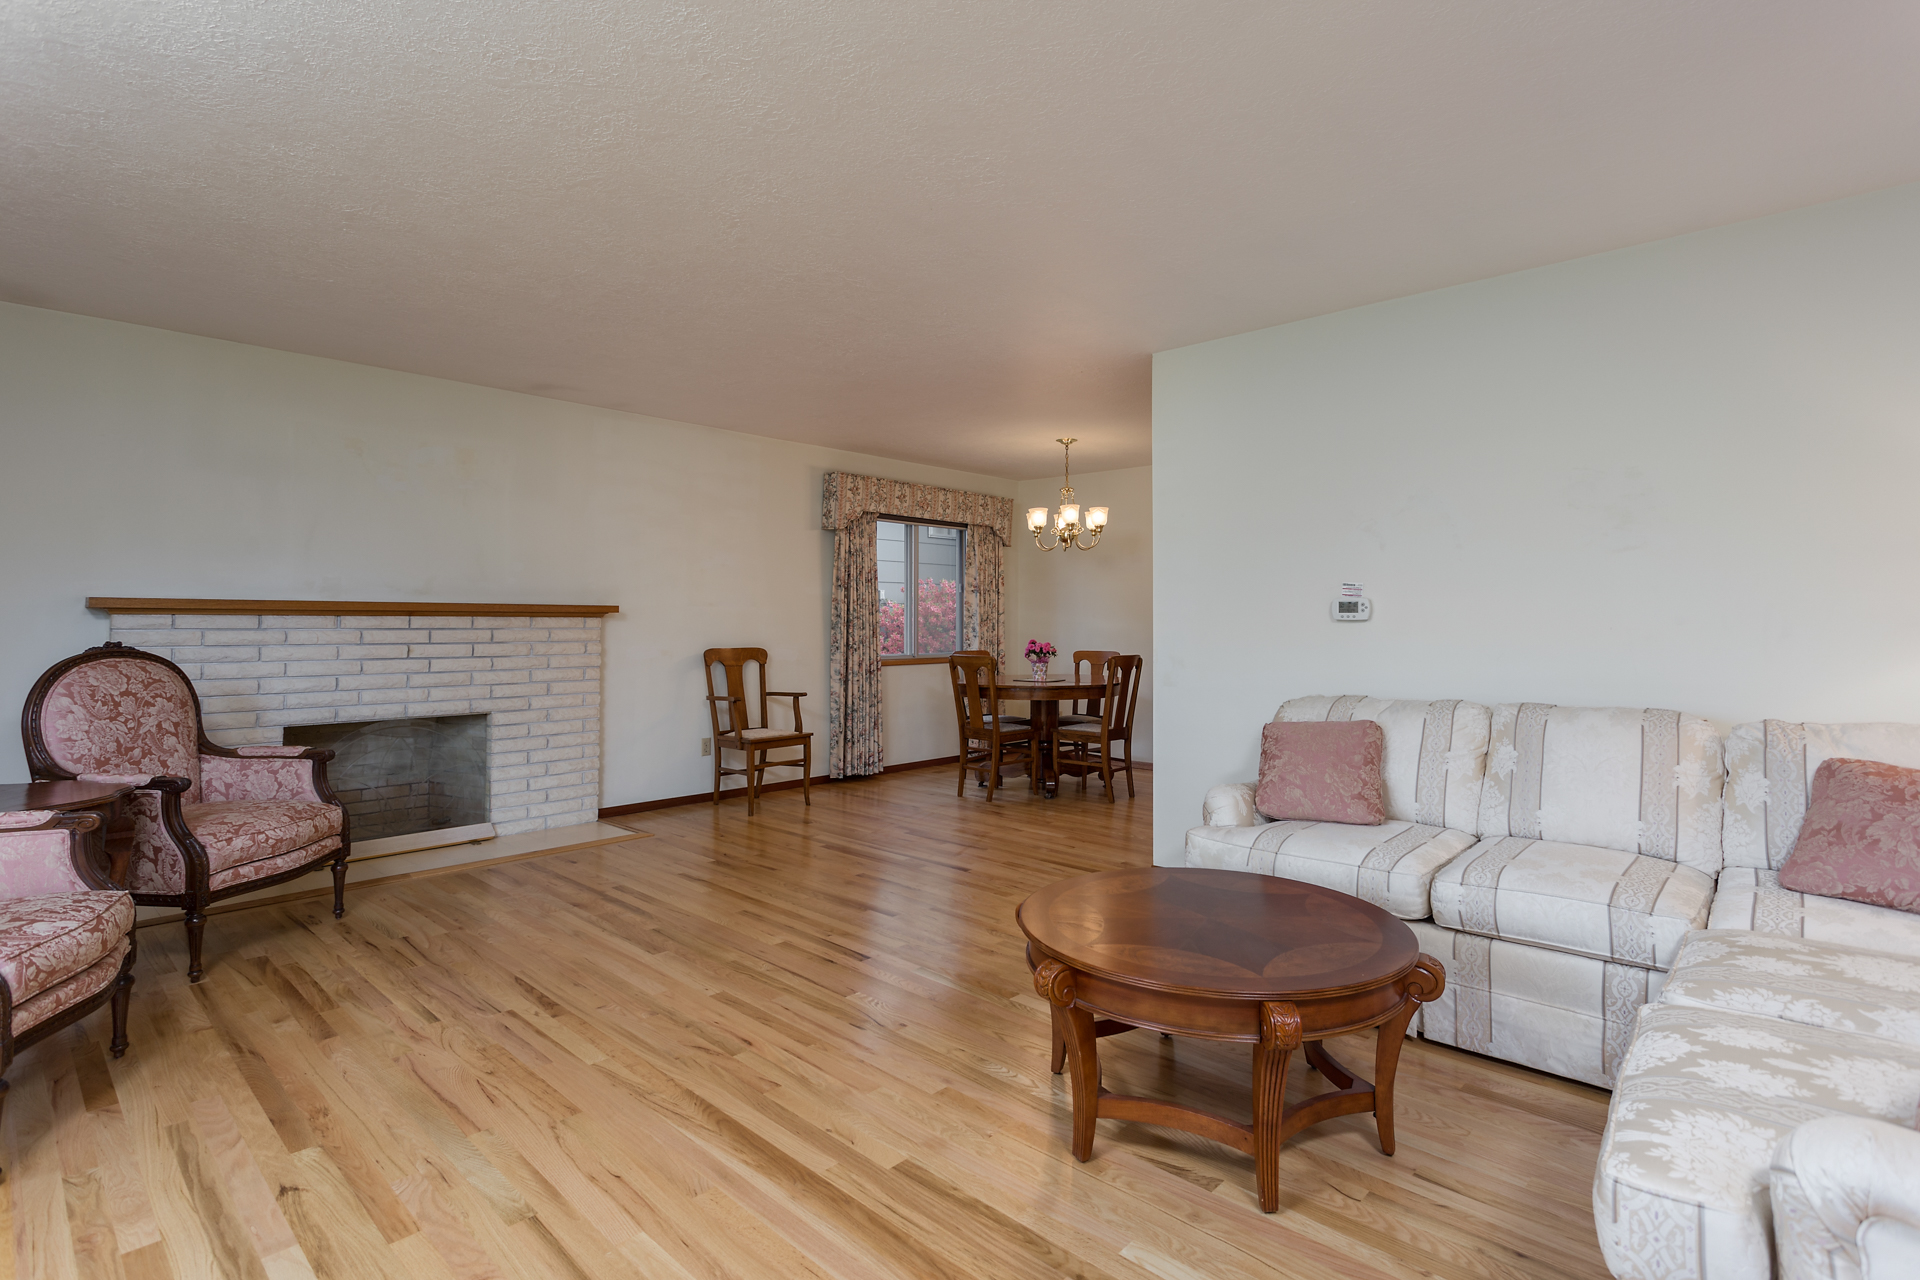 Spacious living and dining area with hardwood floors and cozy fireplace.